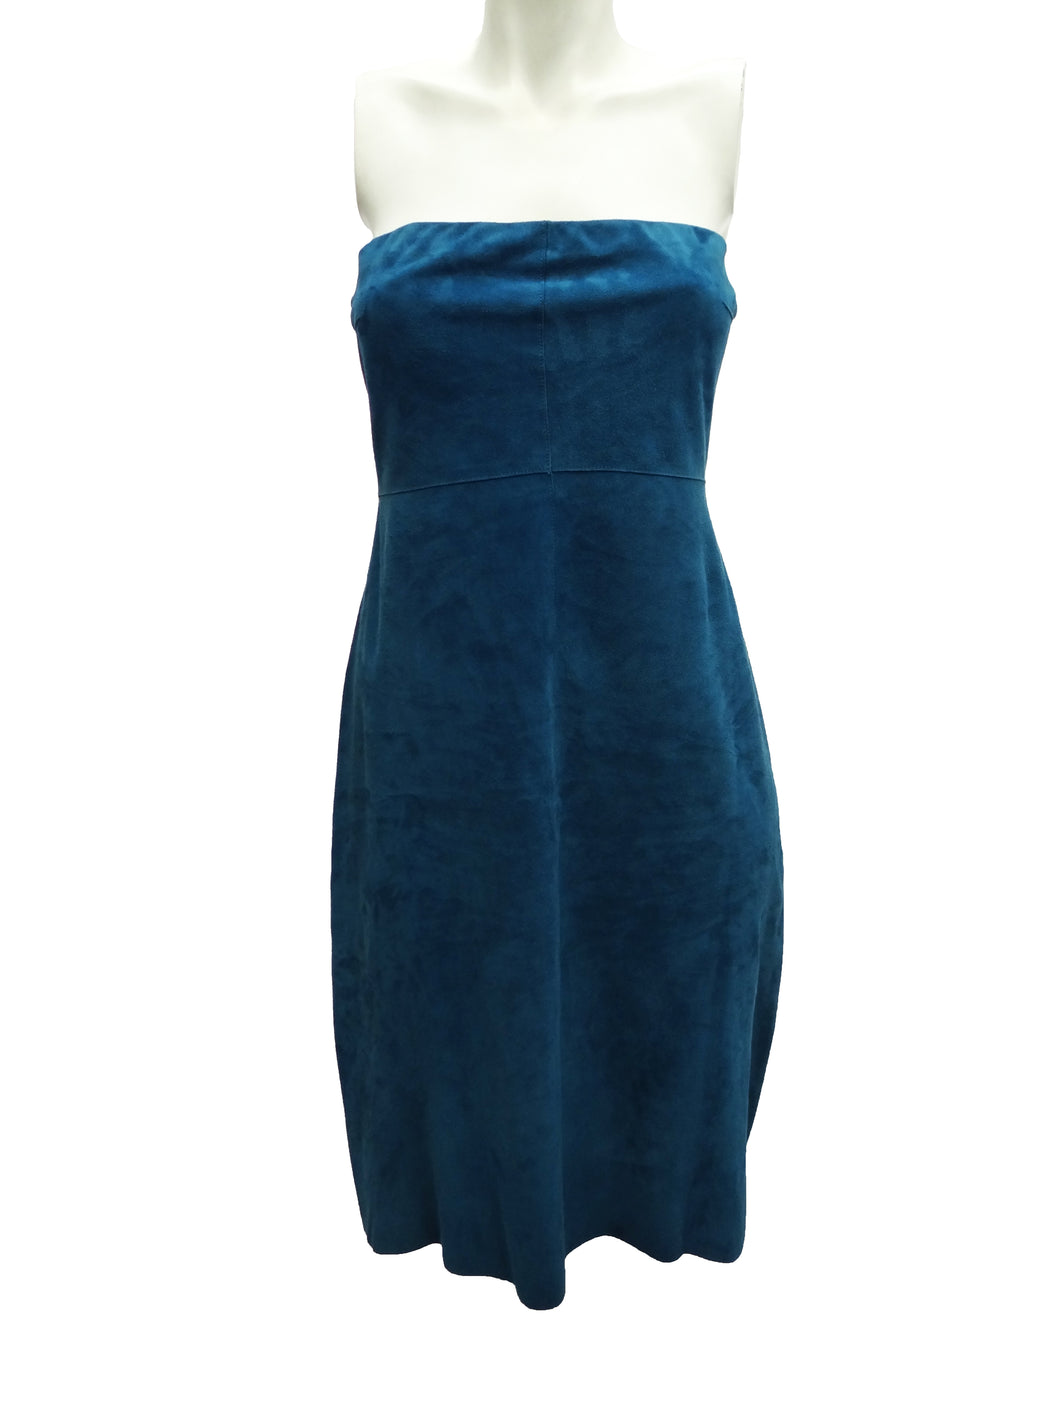 Tahari Petrol Blue Strapless Suede Sheath Dress, UK10-12